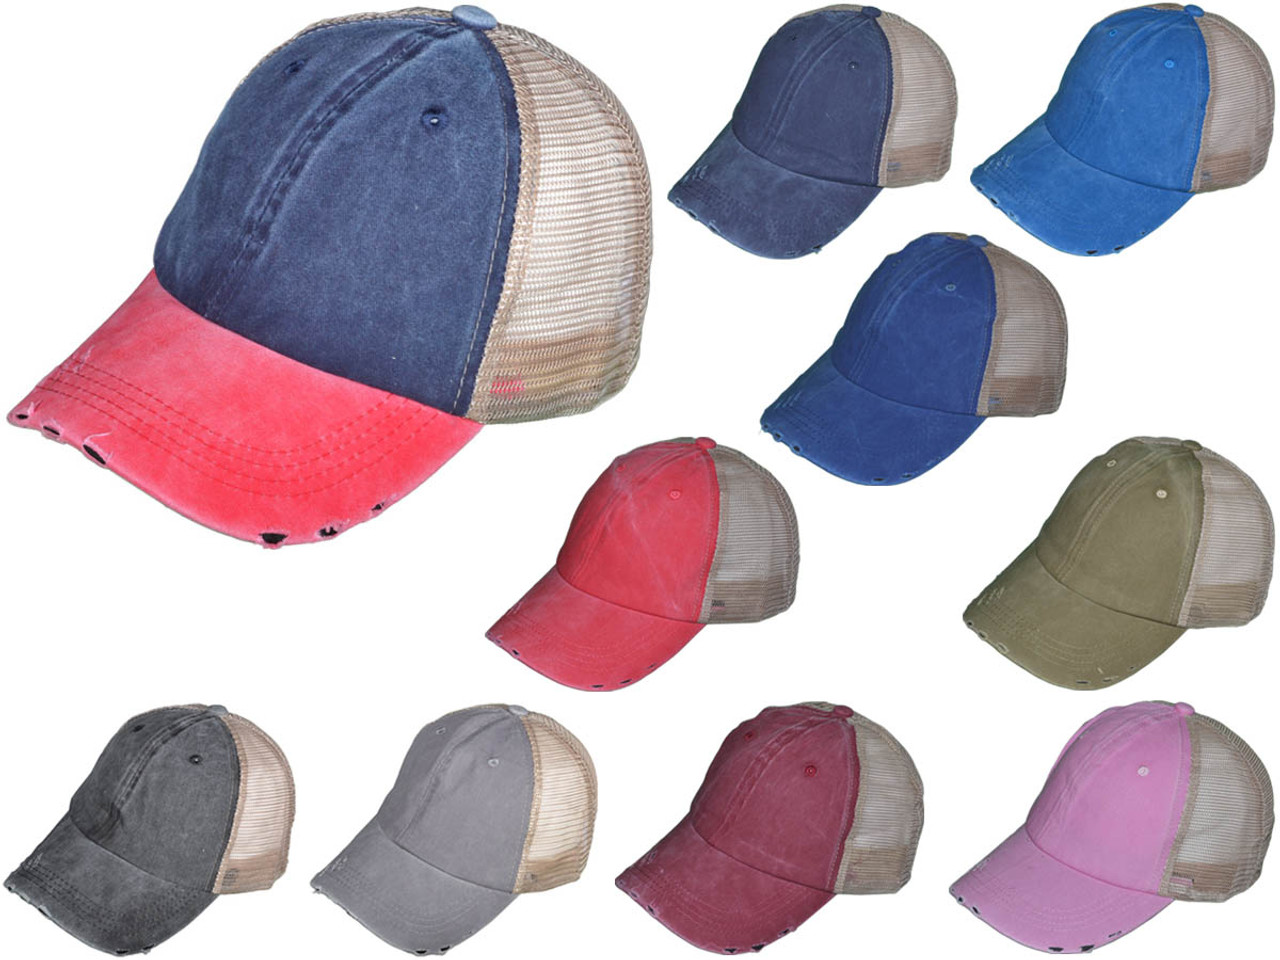 75df2587 Vintage Trucker Hats - Unstructured Pigment-Dyed Distressed Cotton ...